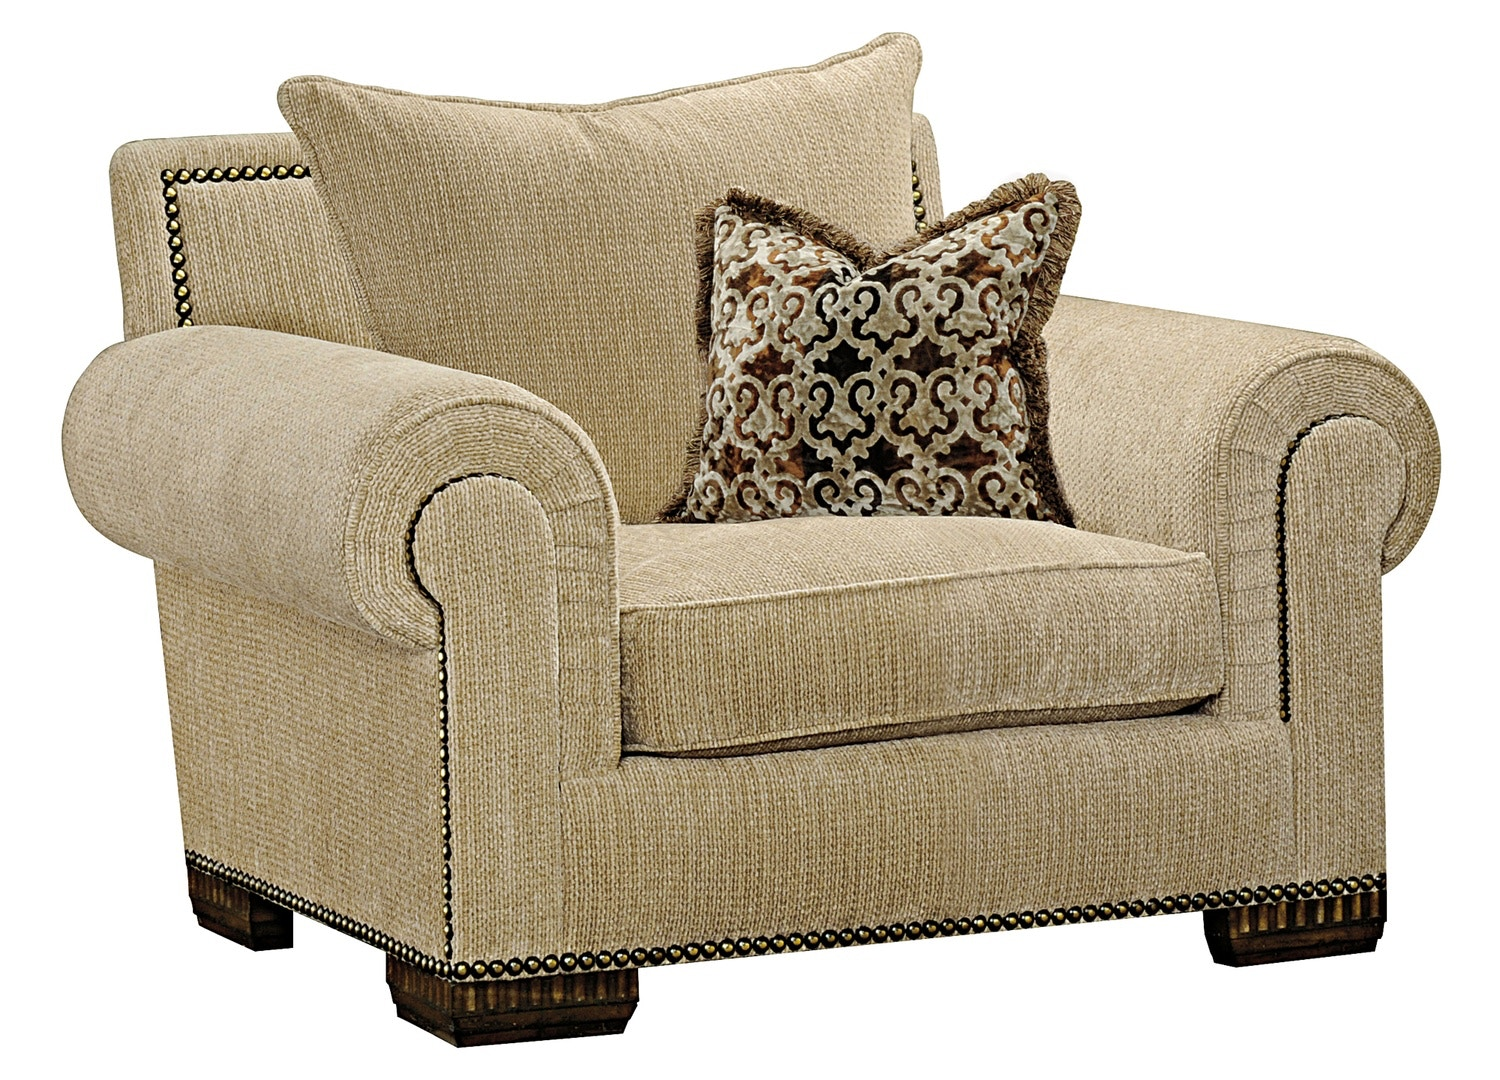 Bentley Lounge Chair. Marge Carson  sc 1 st  Louis Shanks : marge carson bentley sectional - Sectionals, Sofas & Couches